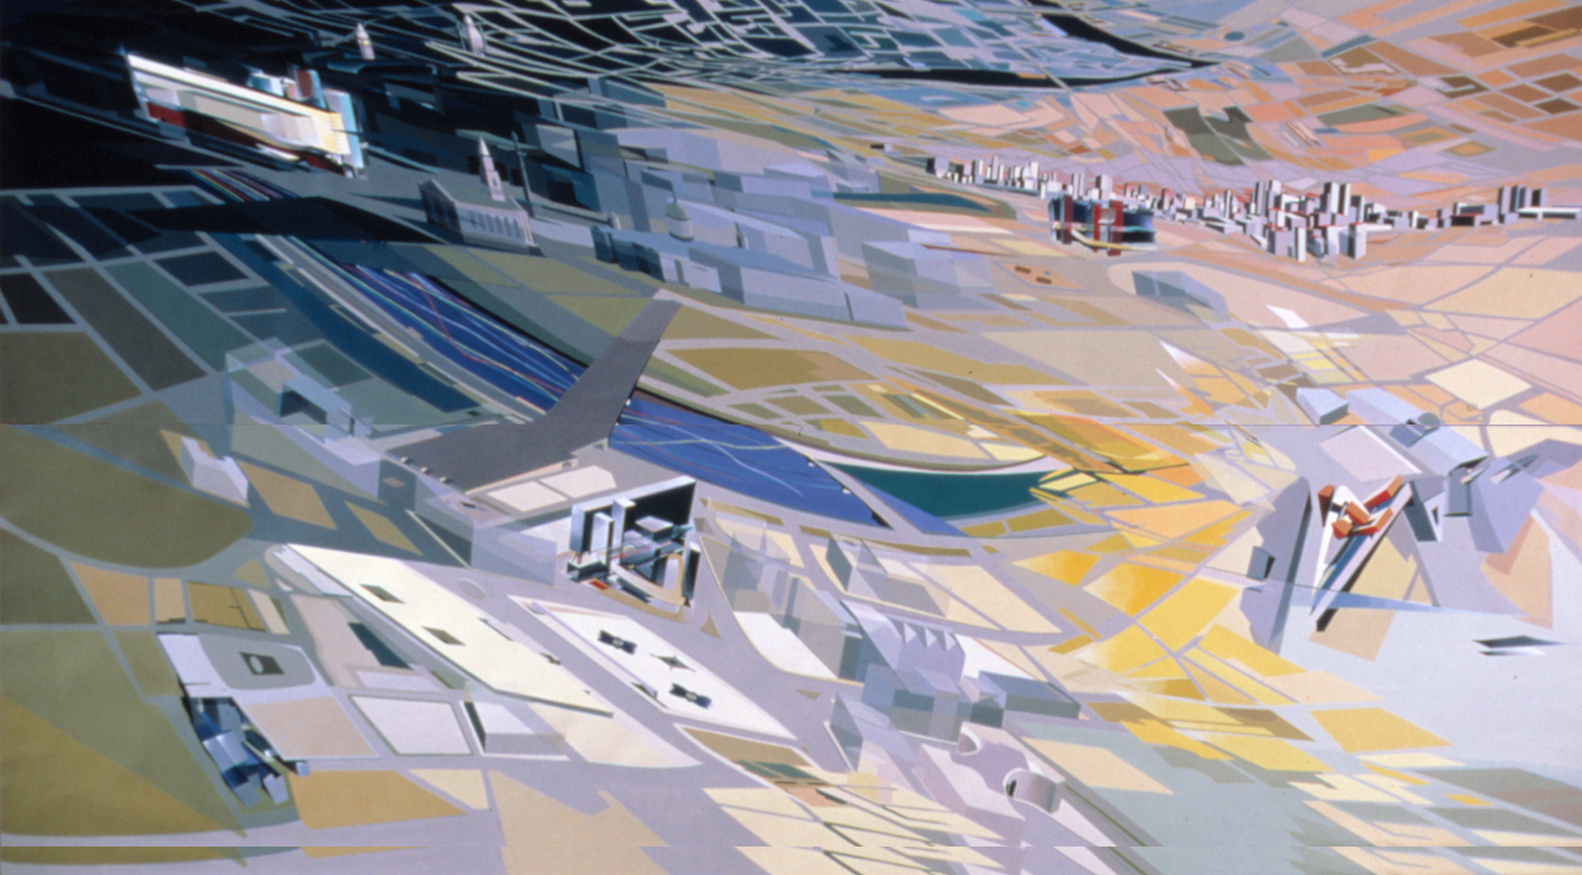 Grand Buildings Trafalgar Square, 1985. Acrylique sur toile. © Zaha Hadid